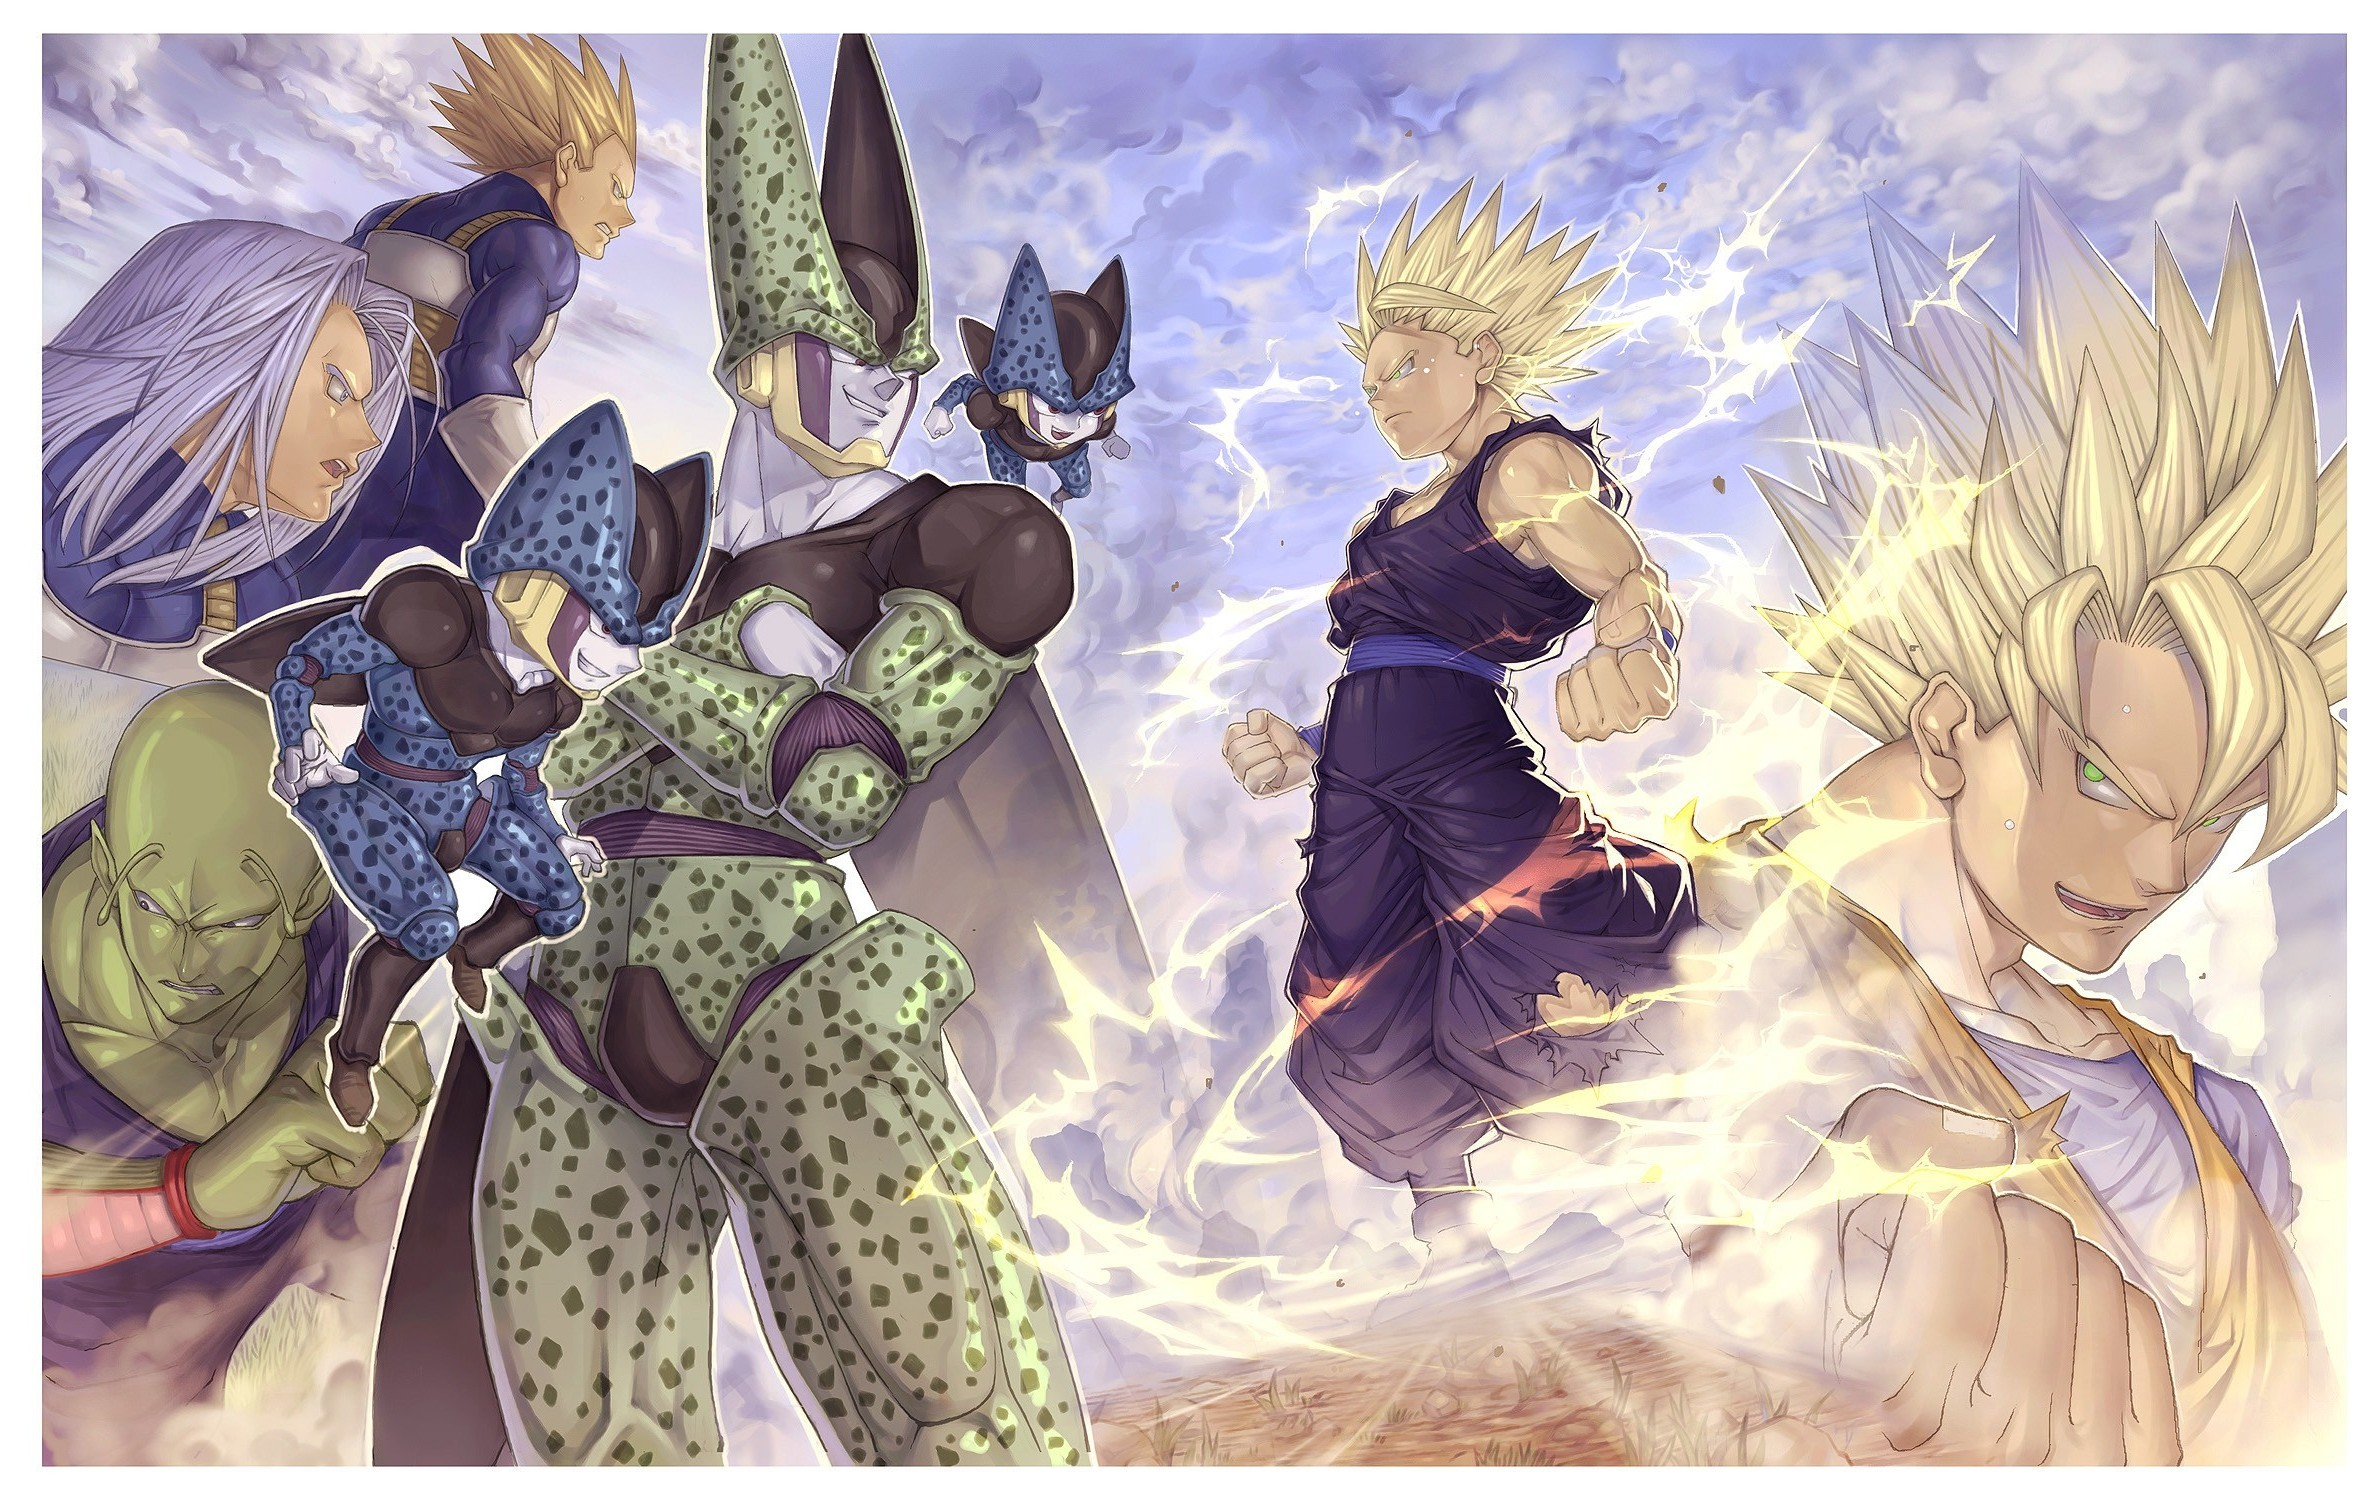 Dragon ball z trunks wallpaper 66 images - Vegeta wallpapers for mobile ...